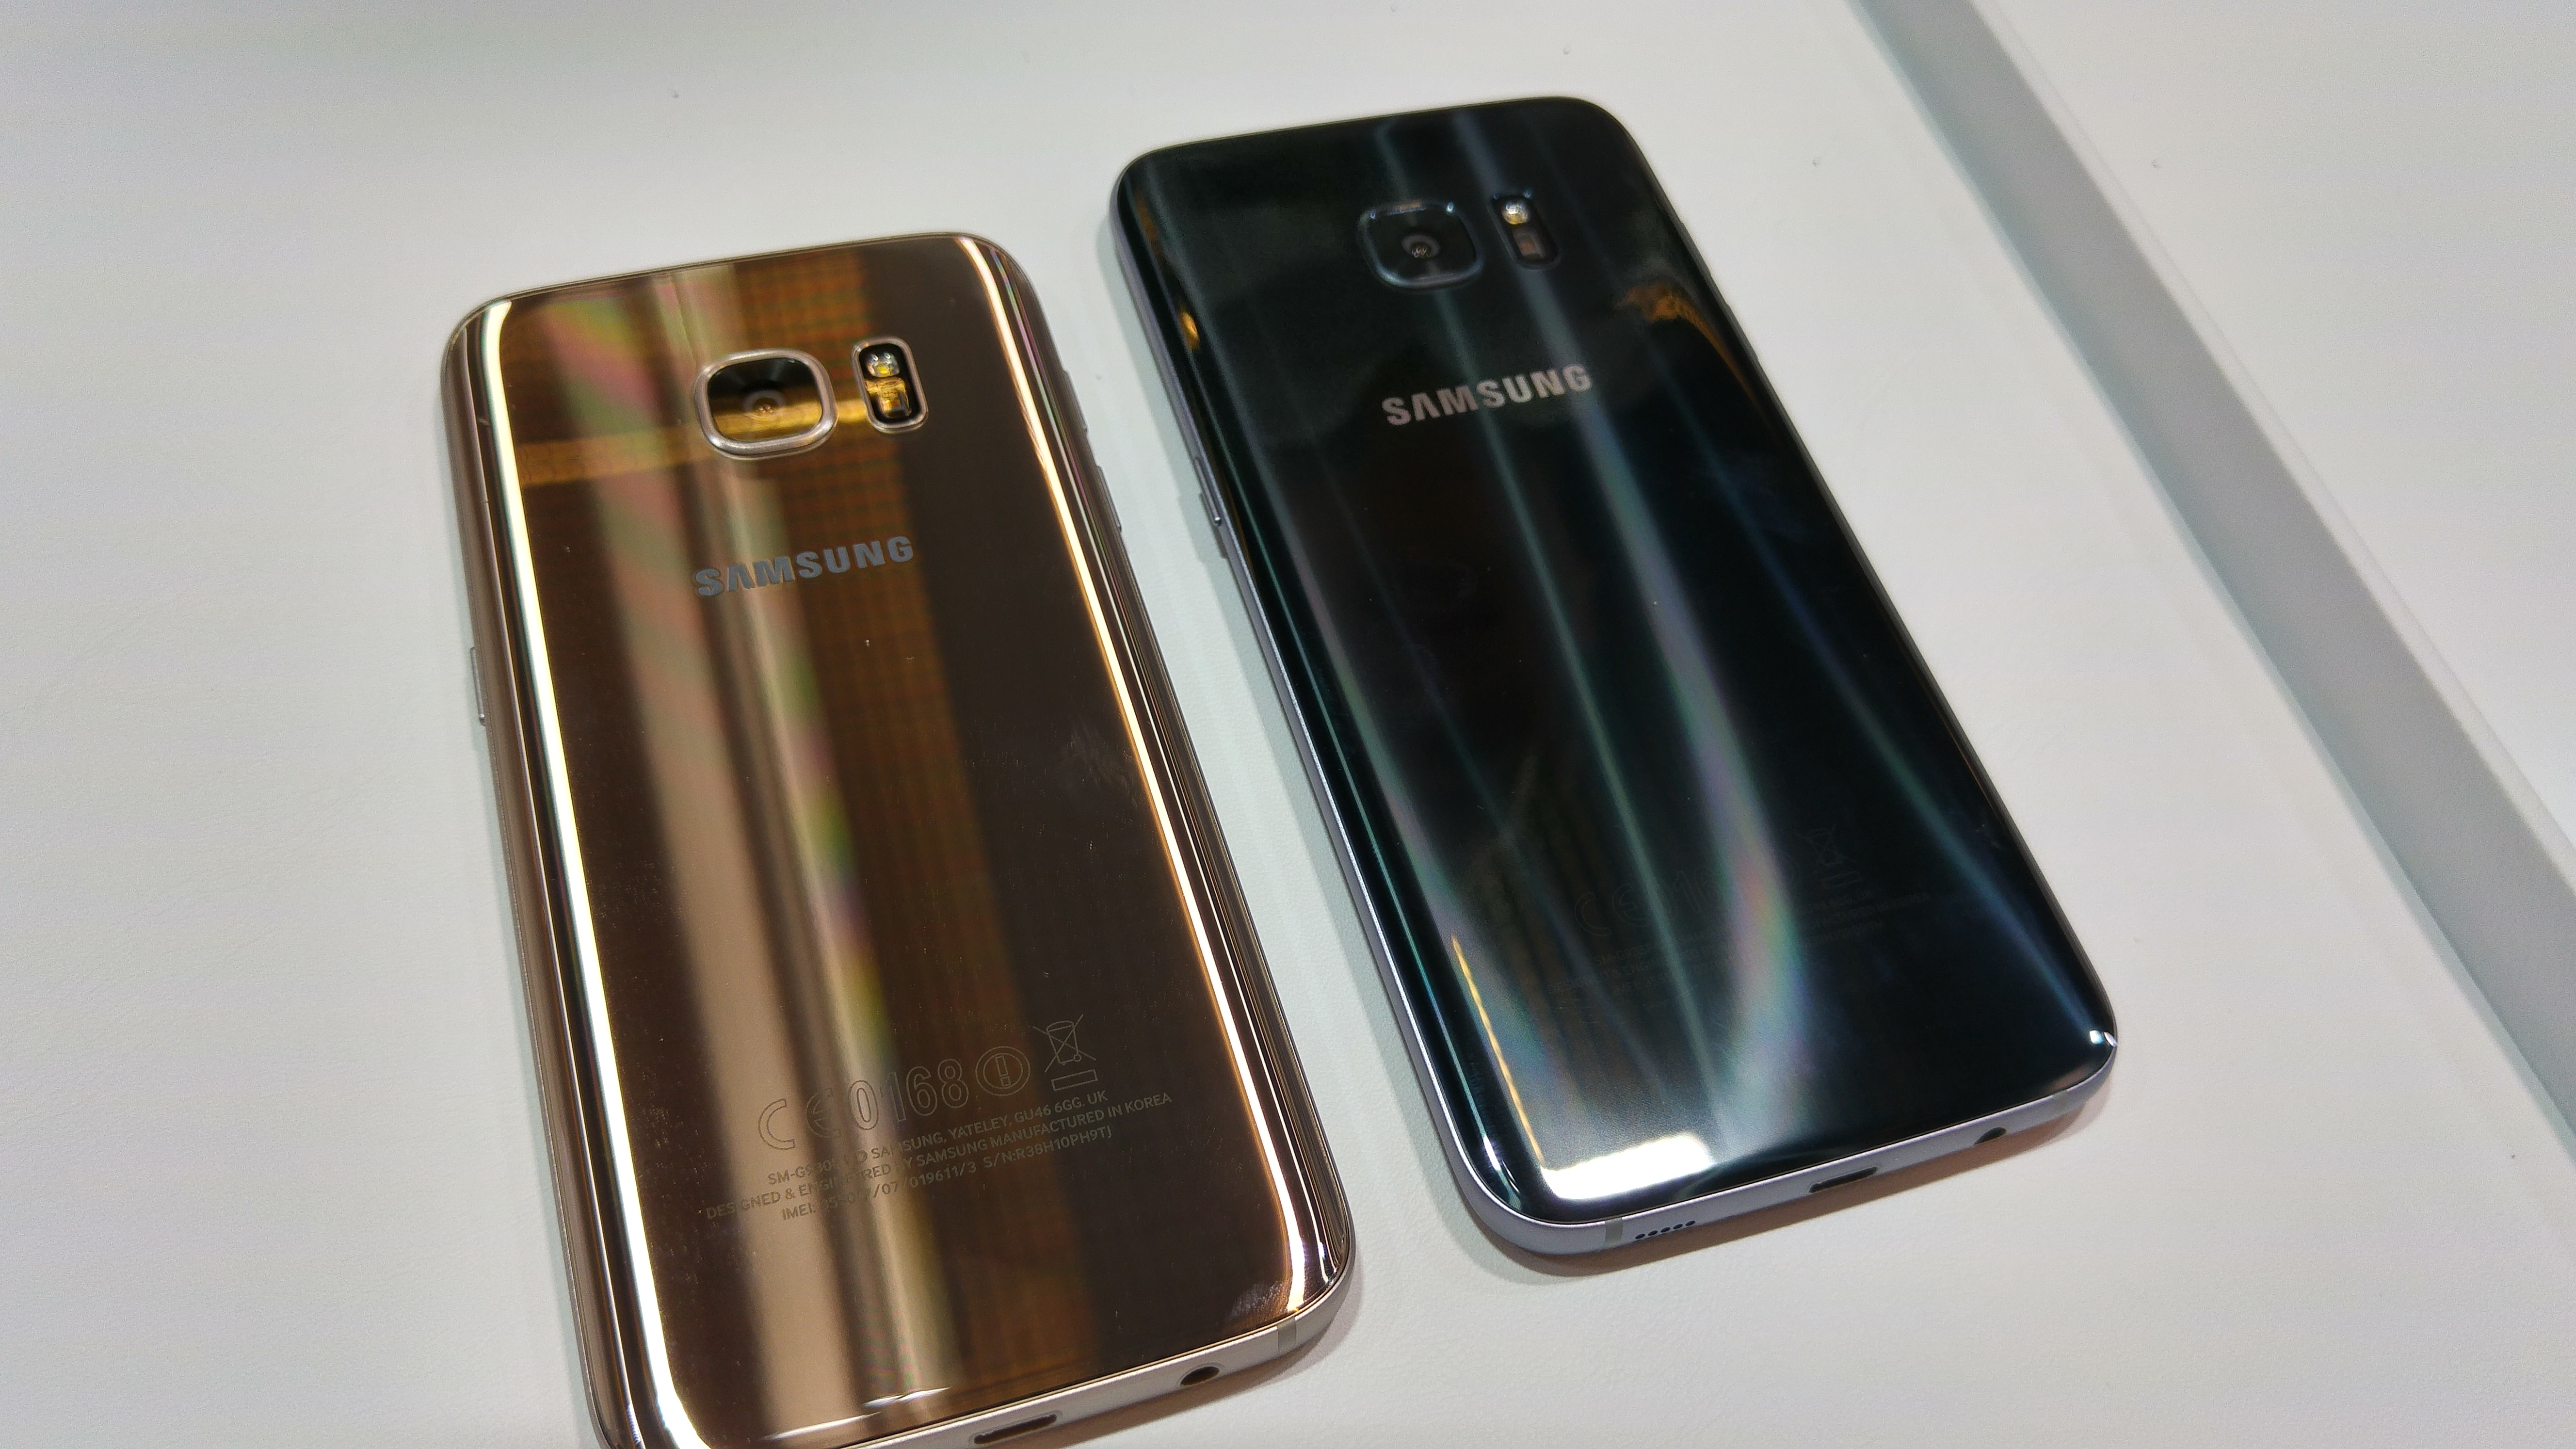 Mwc Samsung Galaxy S7 The Edge And That Gear 360 Camera Hp Lets Delve Deeper